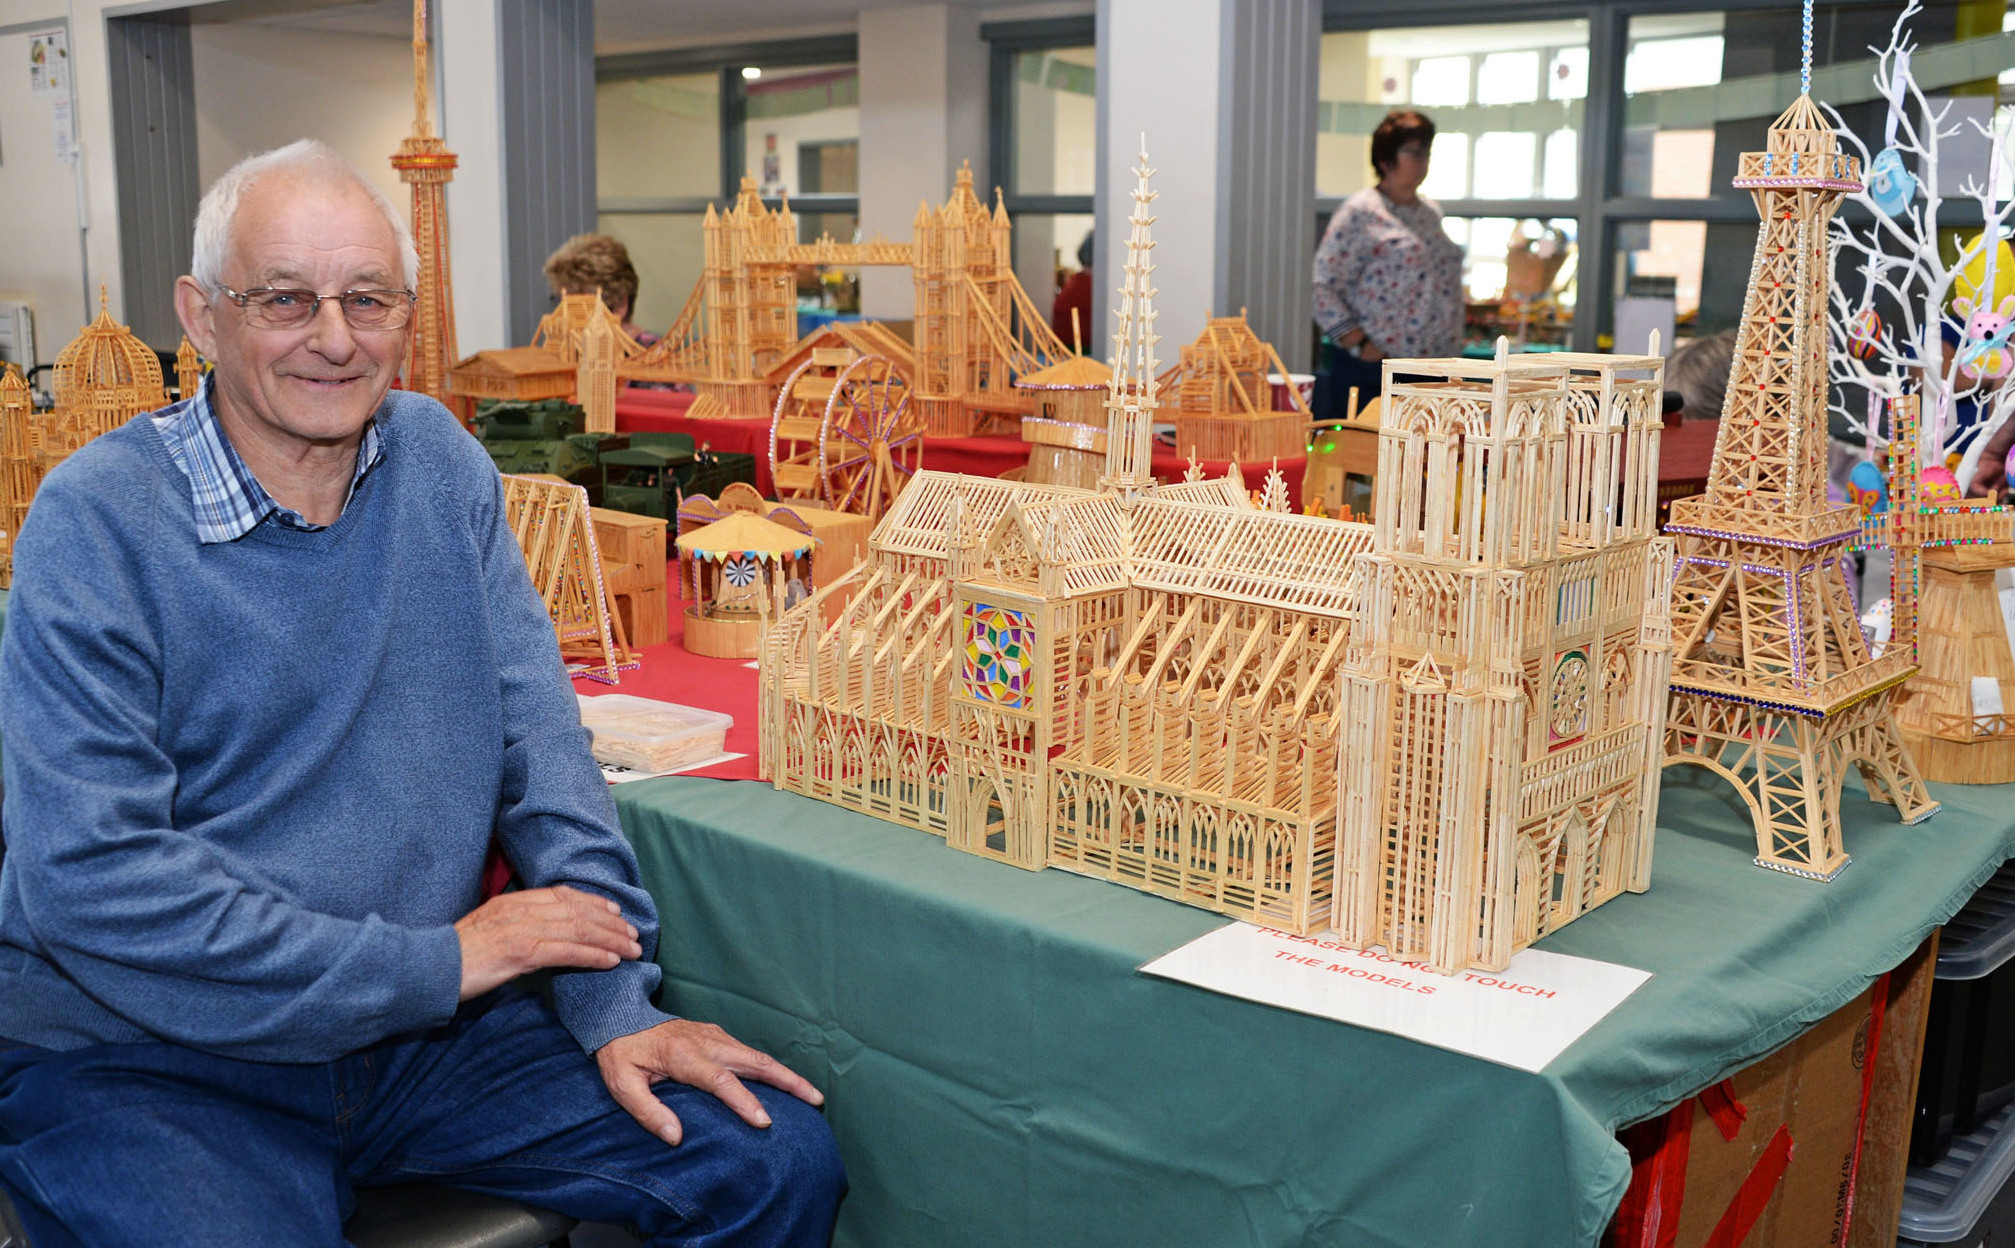 Jim Hesbrook with his Notre Dame Cathedral made out of matchsticks. PICTURE: Evan Dobson.